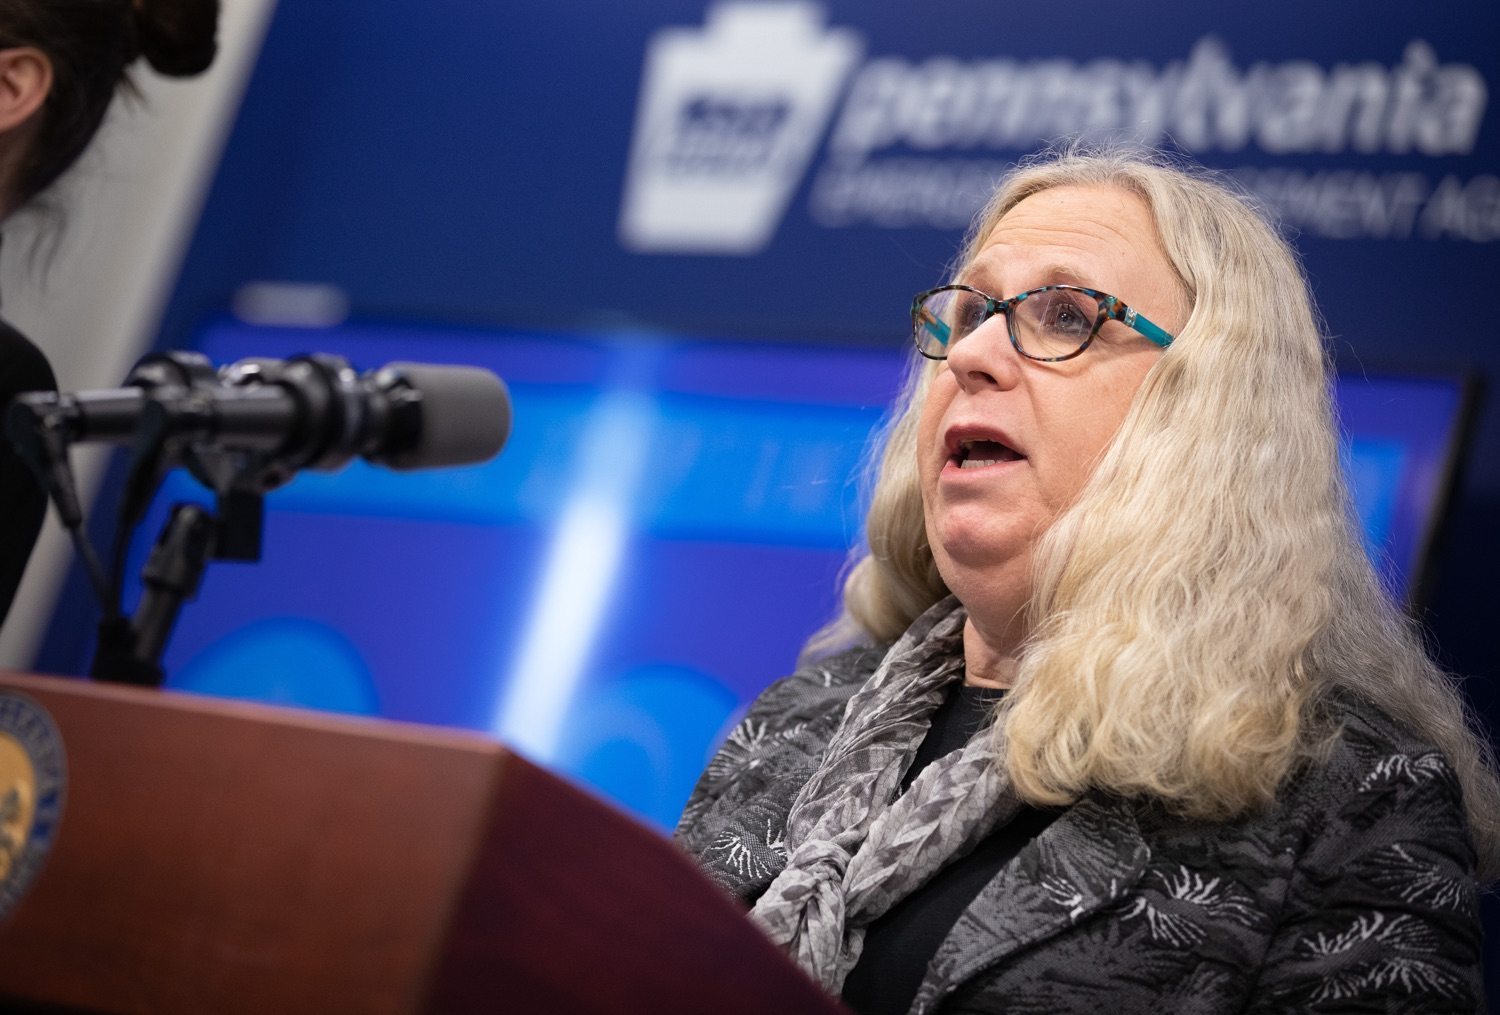 """<a href=""""https://filesource.wostreaming.net/commonwealthofpa/photo/17888_gov_covid19_update_dz_0004.jpg"""" target=""""_blank"""">⇣Download Photo<br></a>Secretary of Health Dr. Rachel Levine speaking to reporters. Governor Tom Wolf and Secretary of Health Dr. Rachel Levine provided an update on the coronavirus known as COVID-19 and outline ongoing efforts to mitigate the virus in Pennsylvania. The Department of Health anticipates that there will be more Pennsylvanians who test positive for COVID-19 in the coming days and weeks and it is important for residents to know the commonwealth is prepared and to be prepared themselves. People have a higher chance of testing positive for COVID-19 if they have traveled to a country or state with known community outbreaks or have come in contact with someone who has the virus. The Wolf Administration is working with the health care community across Pennsylvania to keep them informed, consult on patient testing, and ensure they have the resources they need to care for patients. .March 16, 2020  Harrisburg Pa."""